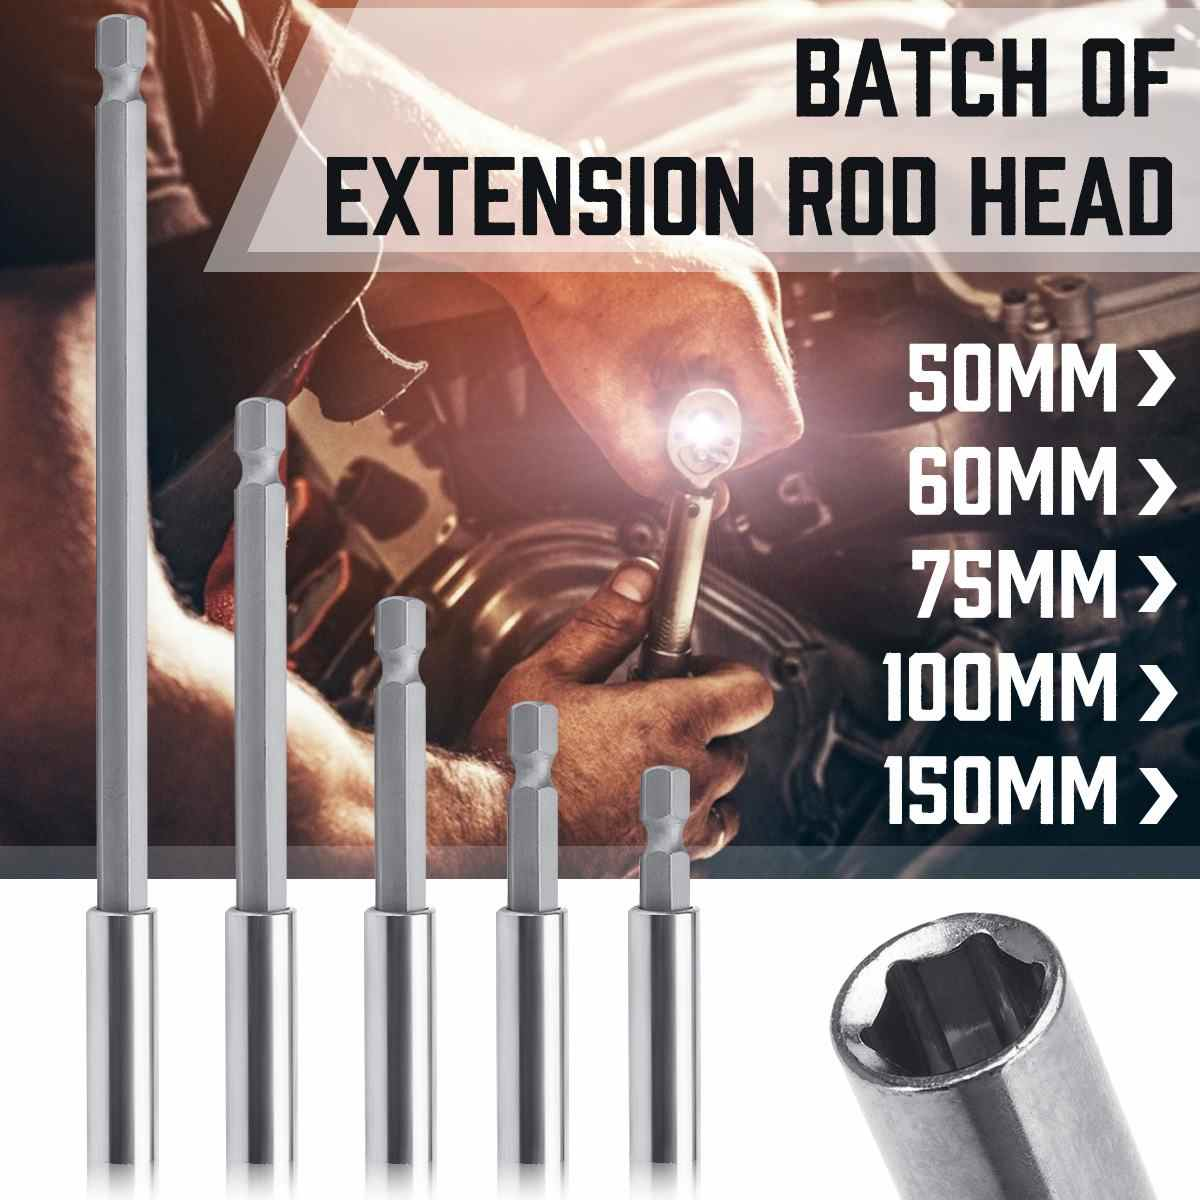 1/4'' Hex Shank Magnetic Extension Rod Batch Head 50/60/75/100/150mm Socket Drill Bits Holders Sleeve for Electric Wrench